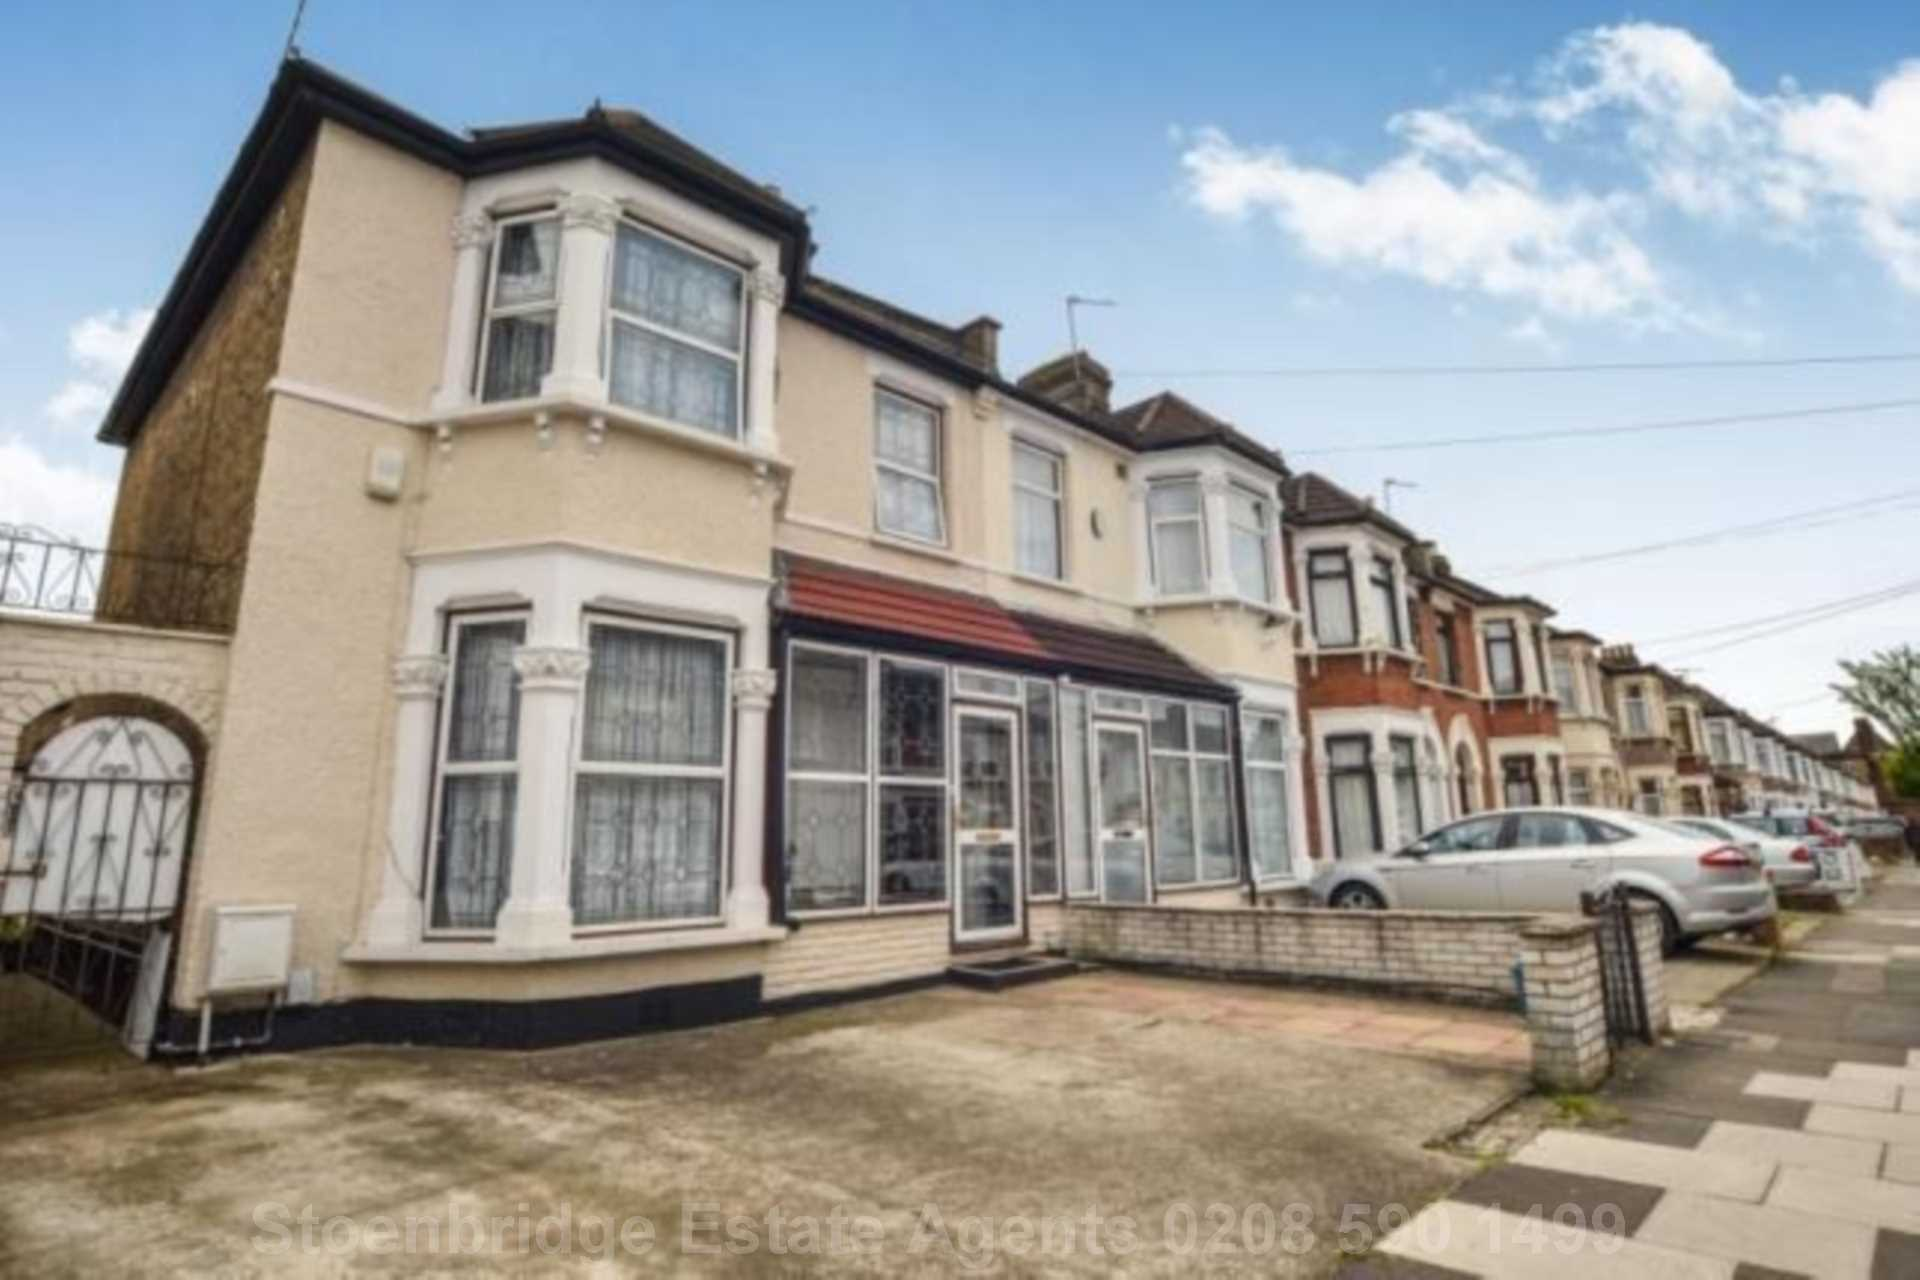 Blythswood Road, Ilford, Image 1